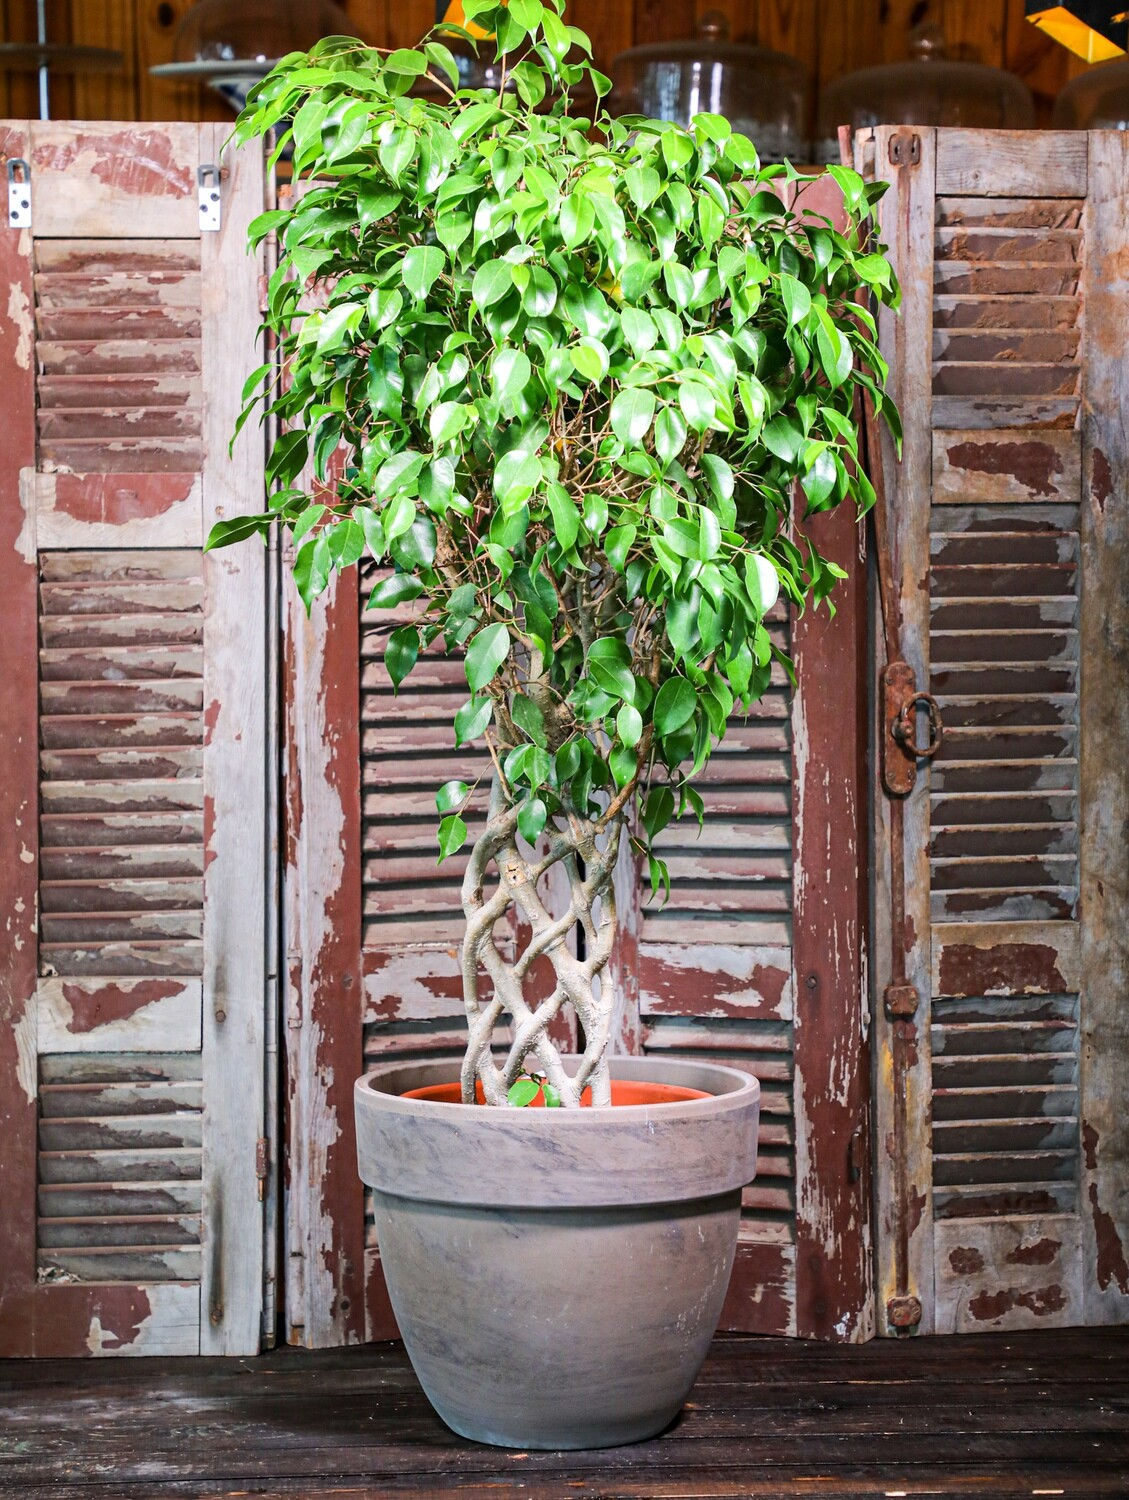 Ficus benjamina braided (Plant) - Nature by Marc Beyrouthy